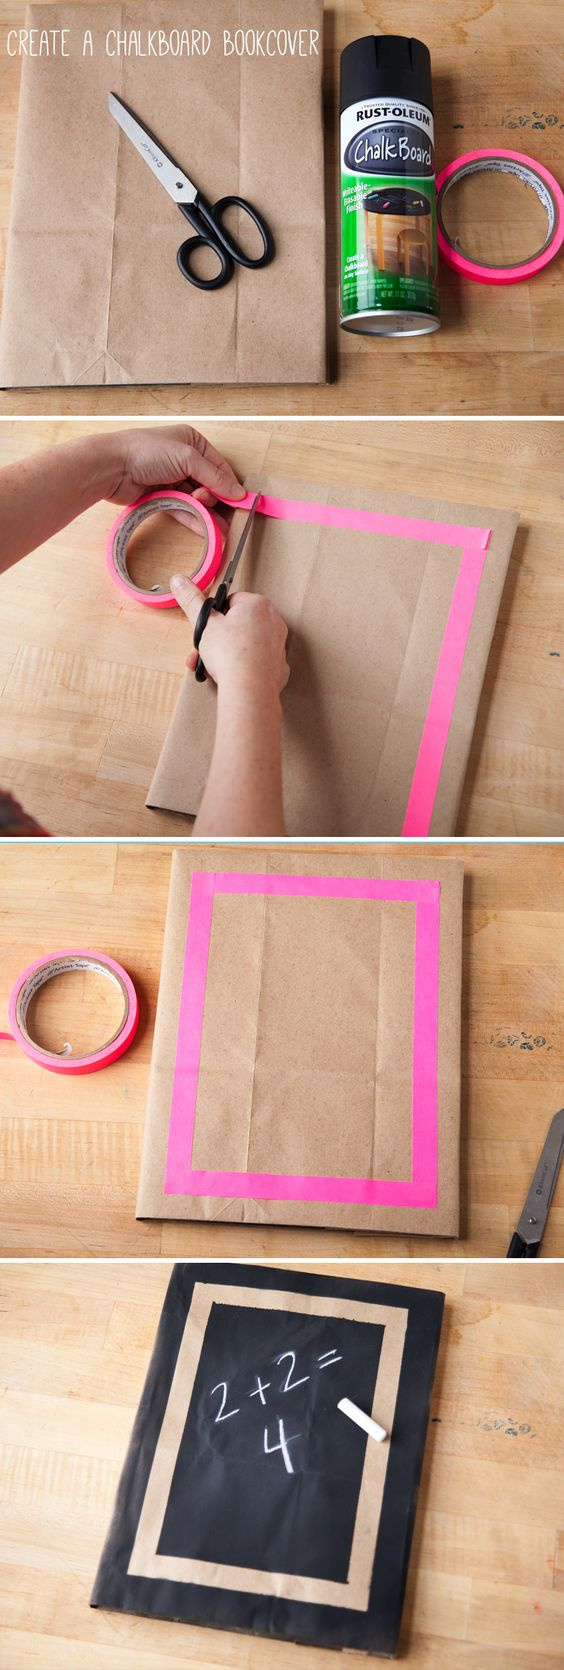 Cool Book Covers For School : Make a chalkboard book cover for back to school this makes